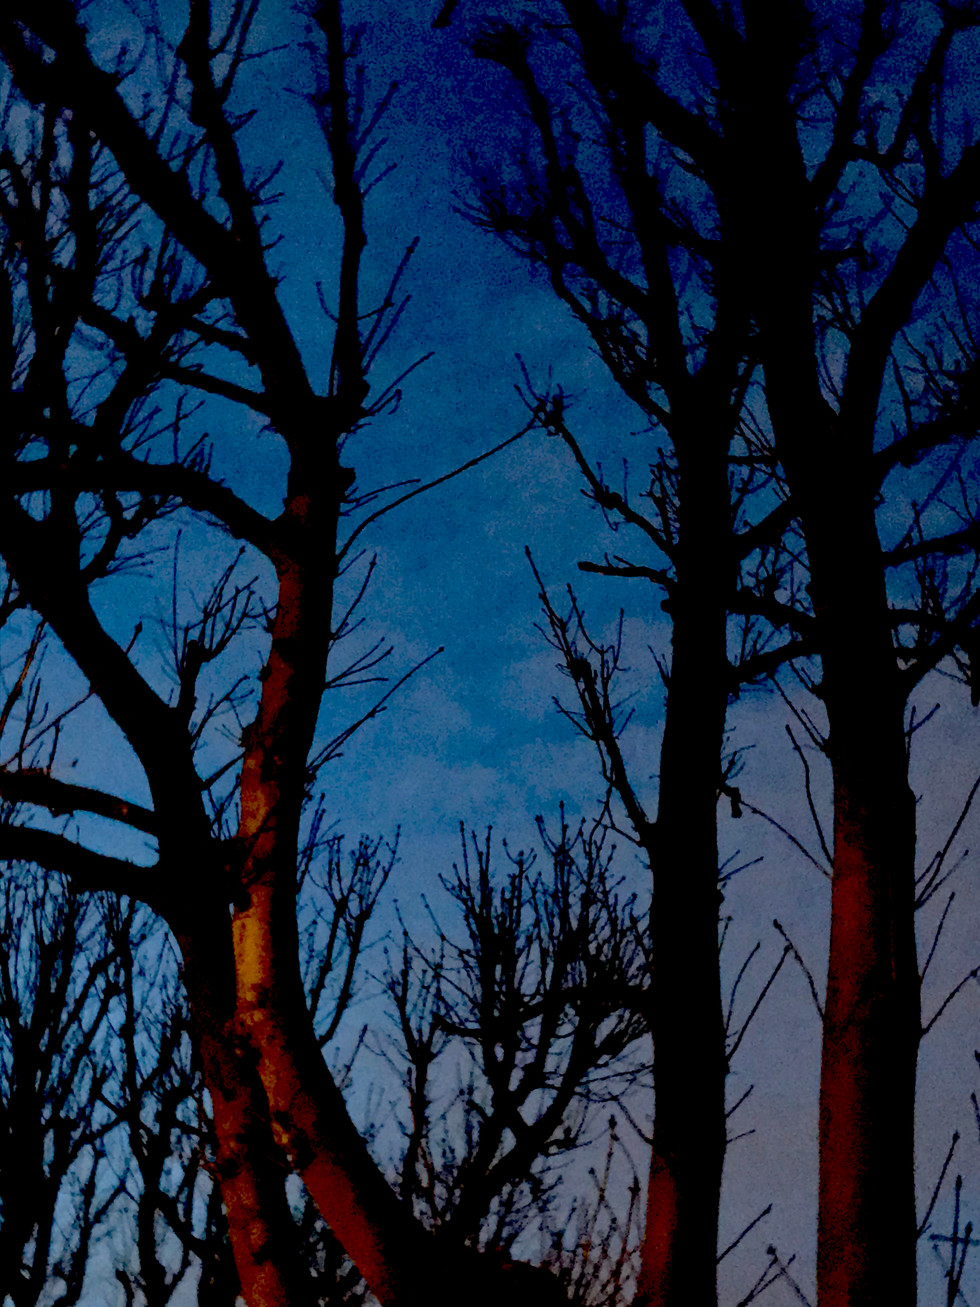 Twighlight Trees March 2020